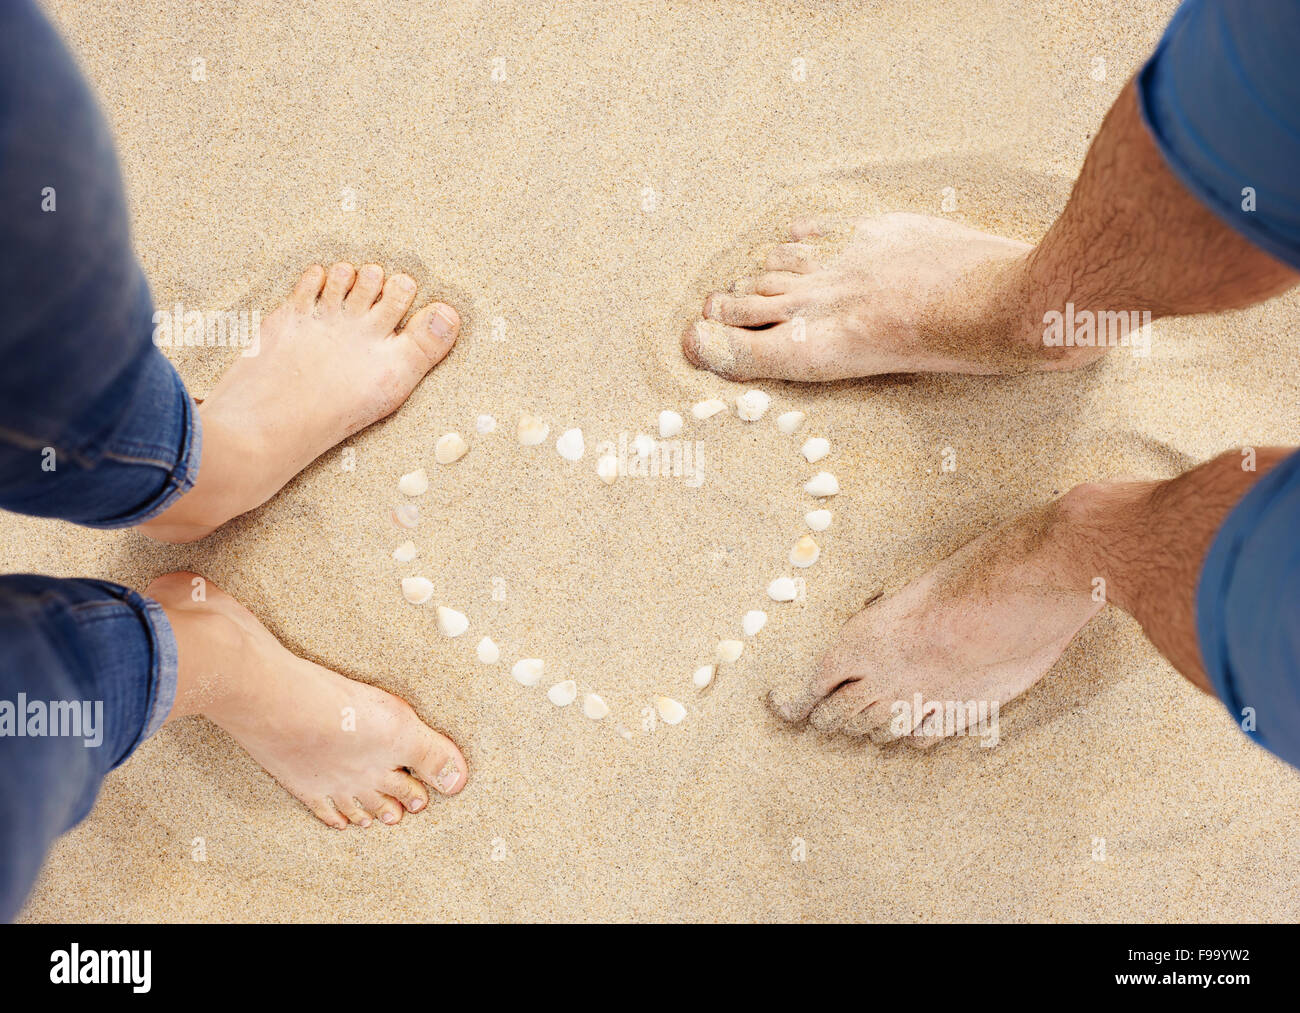 Female And Male Feet Closeup Of Woman And Man Standing Next To The S Heart At The Sandy Beach